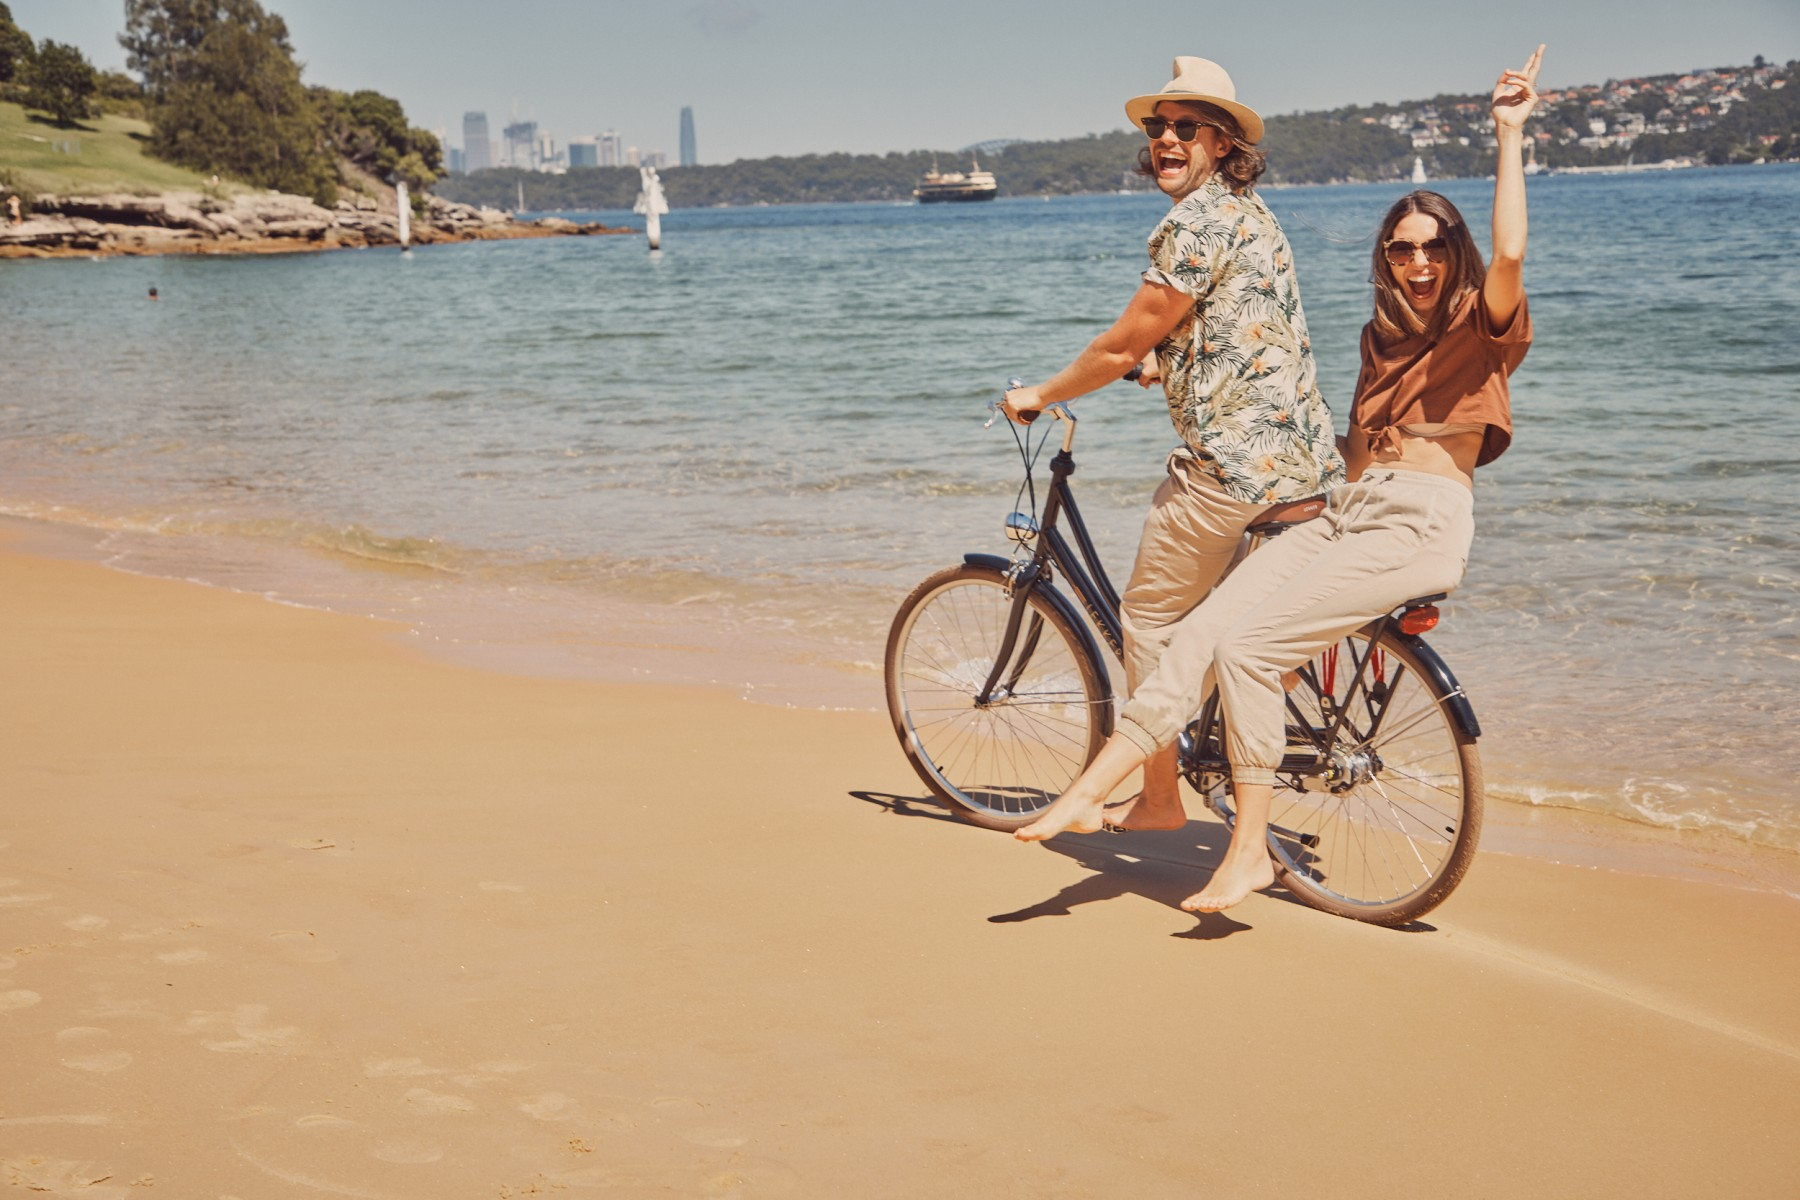 Young woman and young man wearing sunglasses riding one bicycle at the beach having fun